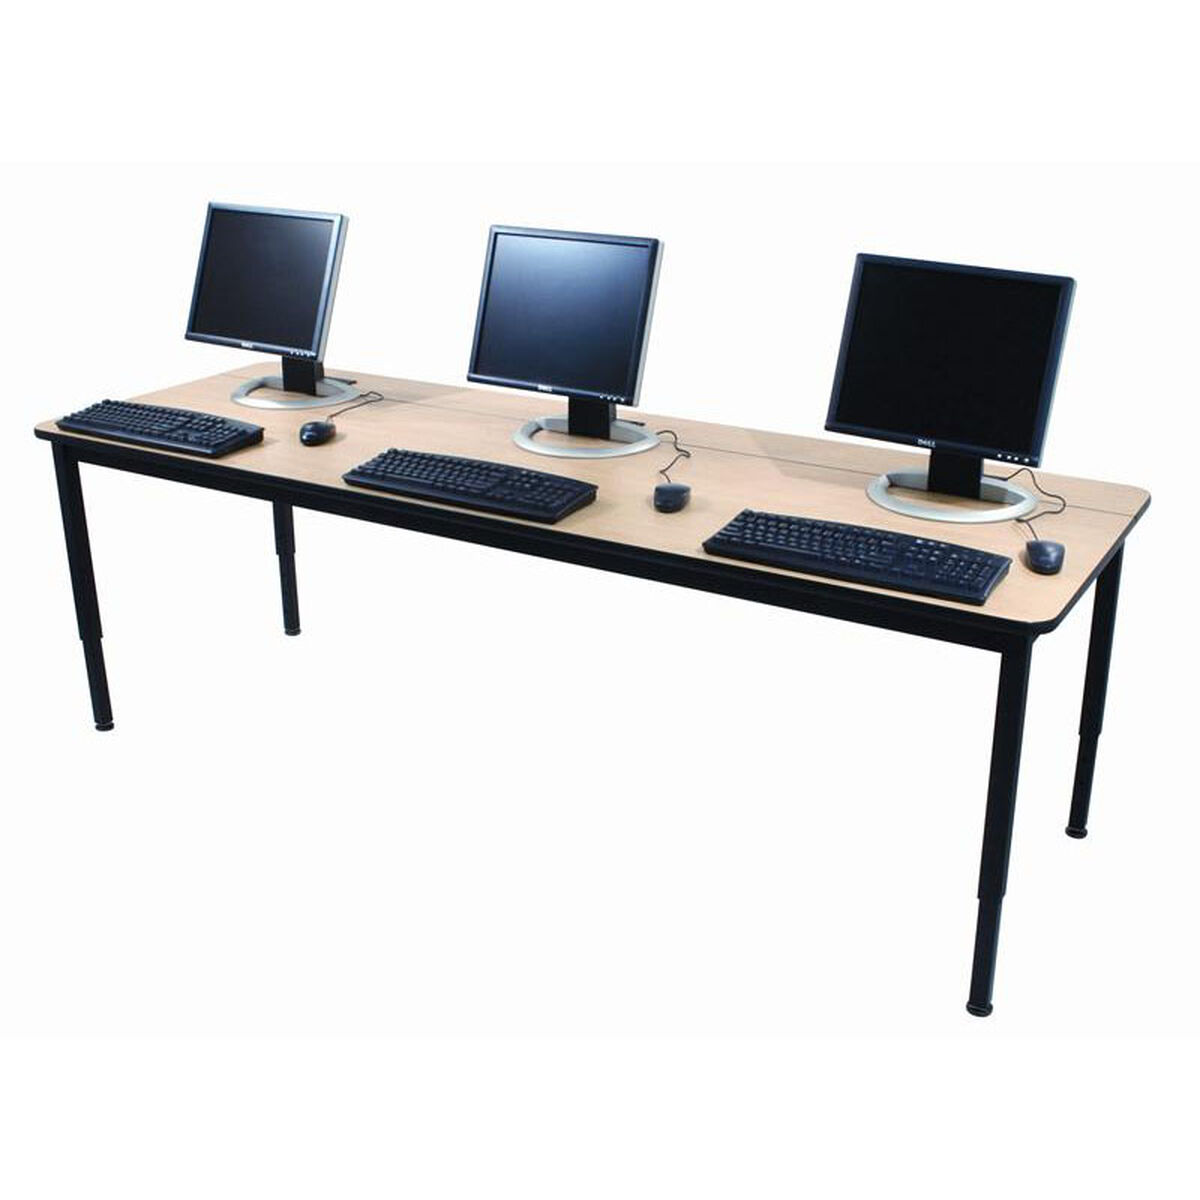 Flip Top Computer Training Table FTT SchoolFurnitureLesscom - Adjustable height training table